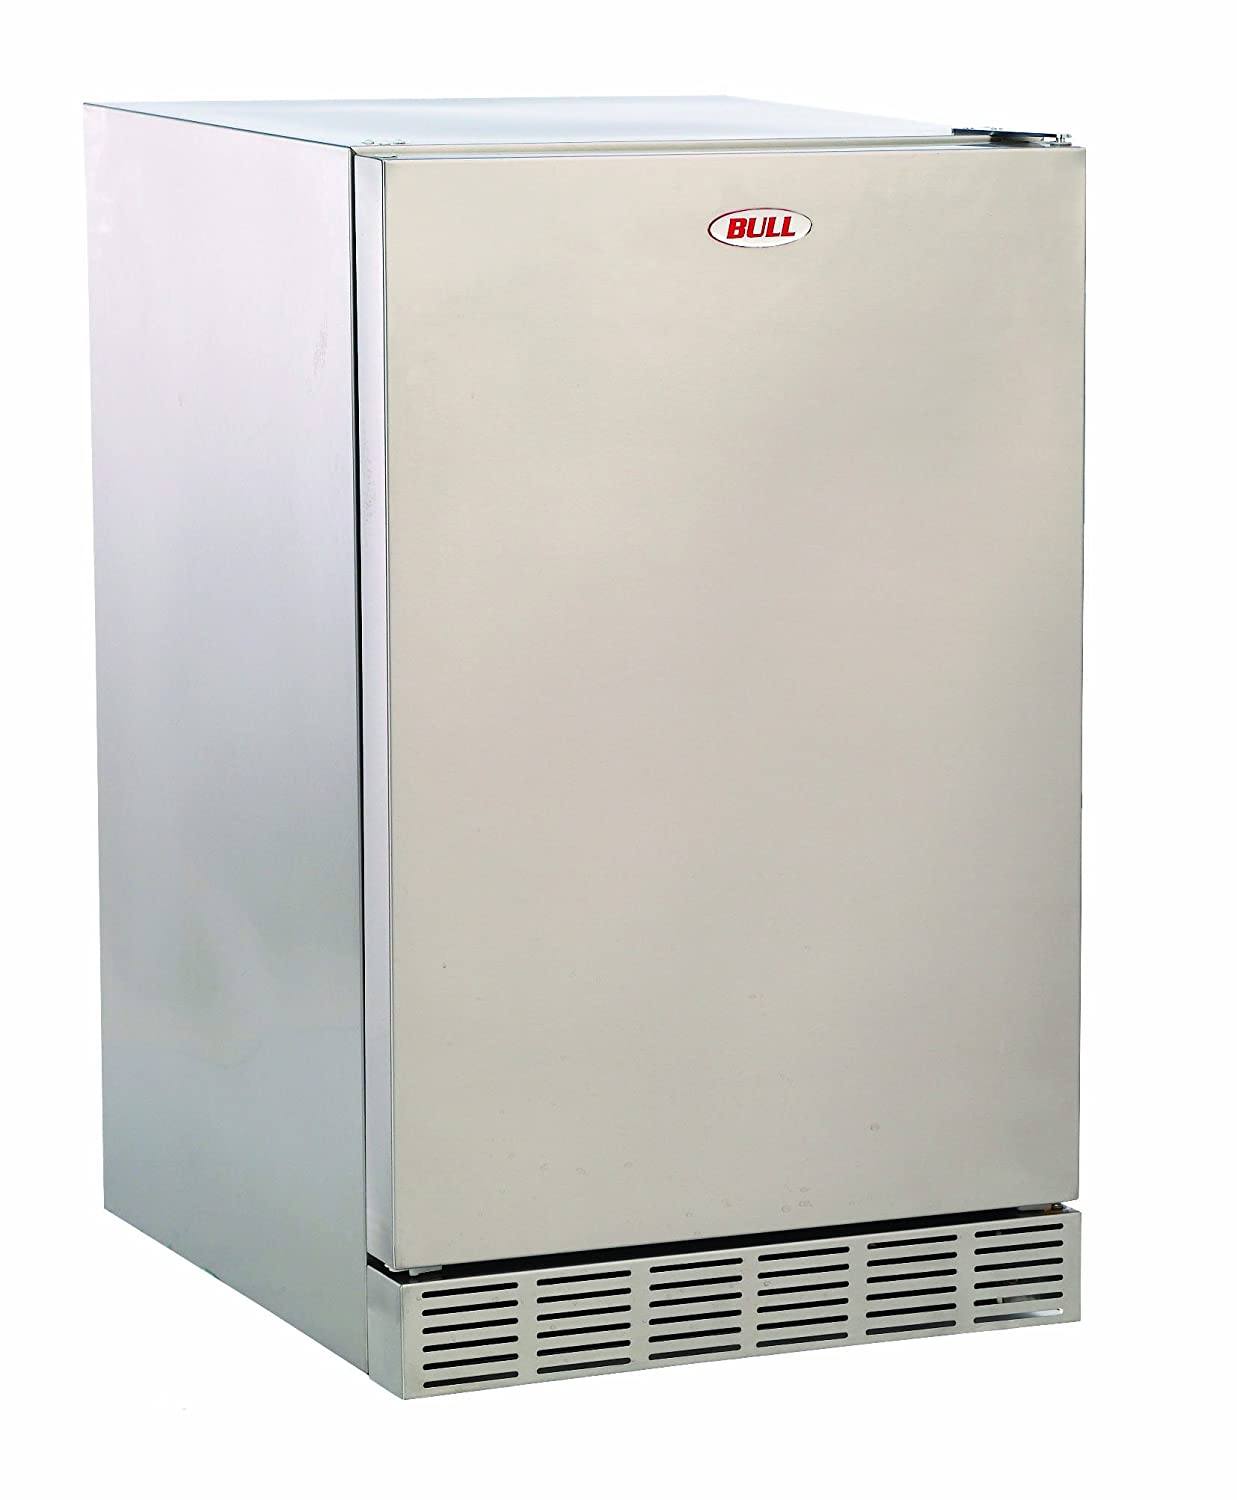 Stainless Steel Refridgerators Amazoncom Bull Outdoor Products 12001 Outdoor Rated